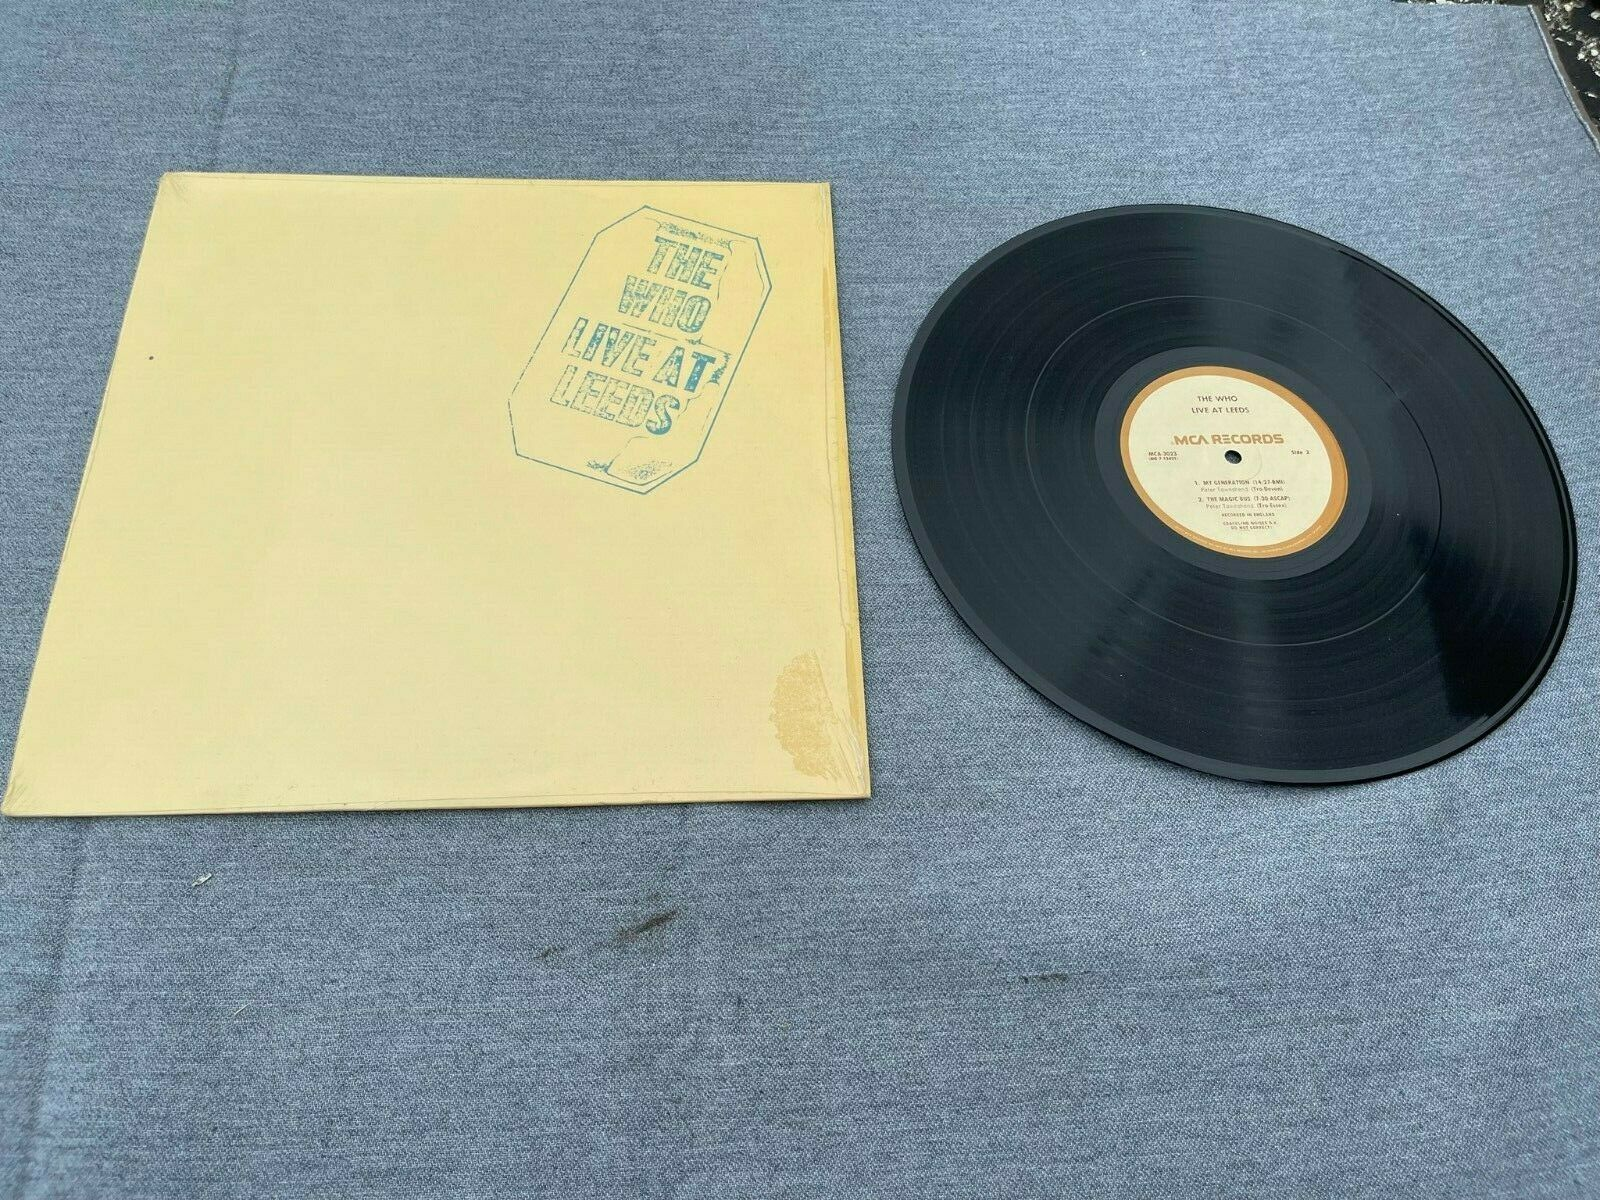 1970 THE WHO - Live At Leeds - Vinyl 12 Lp./ Pete Townsend EX/NM Orig Shrink - $29.99